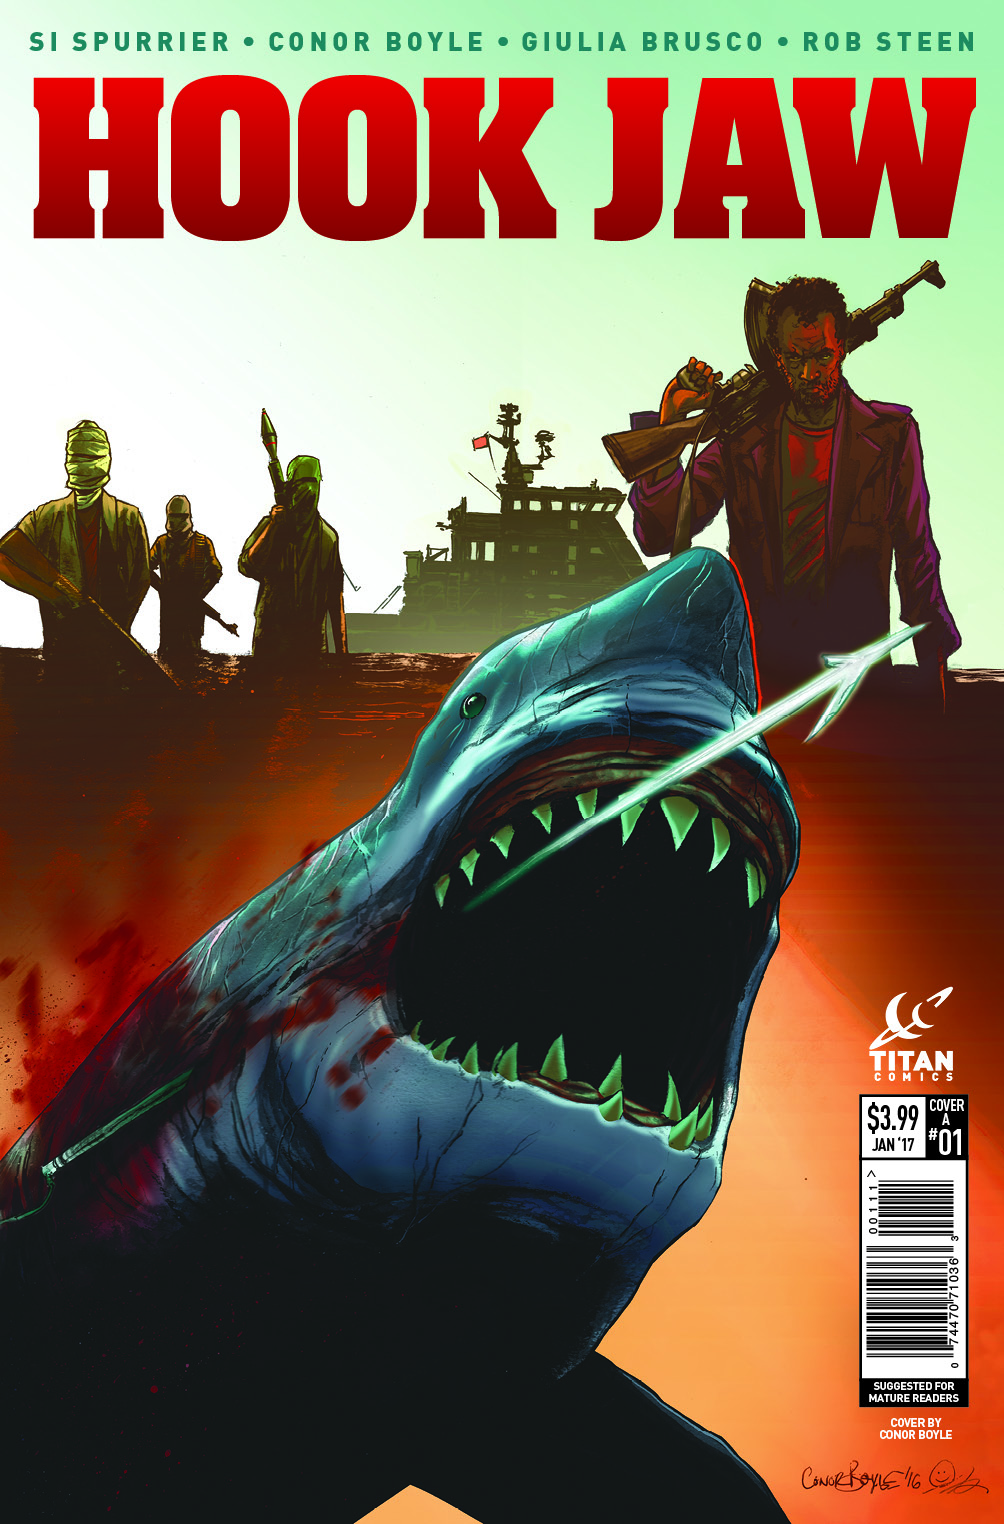 'Hook Jaw' #1 – Lettered, Interior Art Preview from Issue 1 Surfaces!